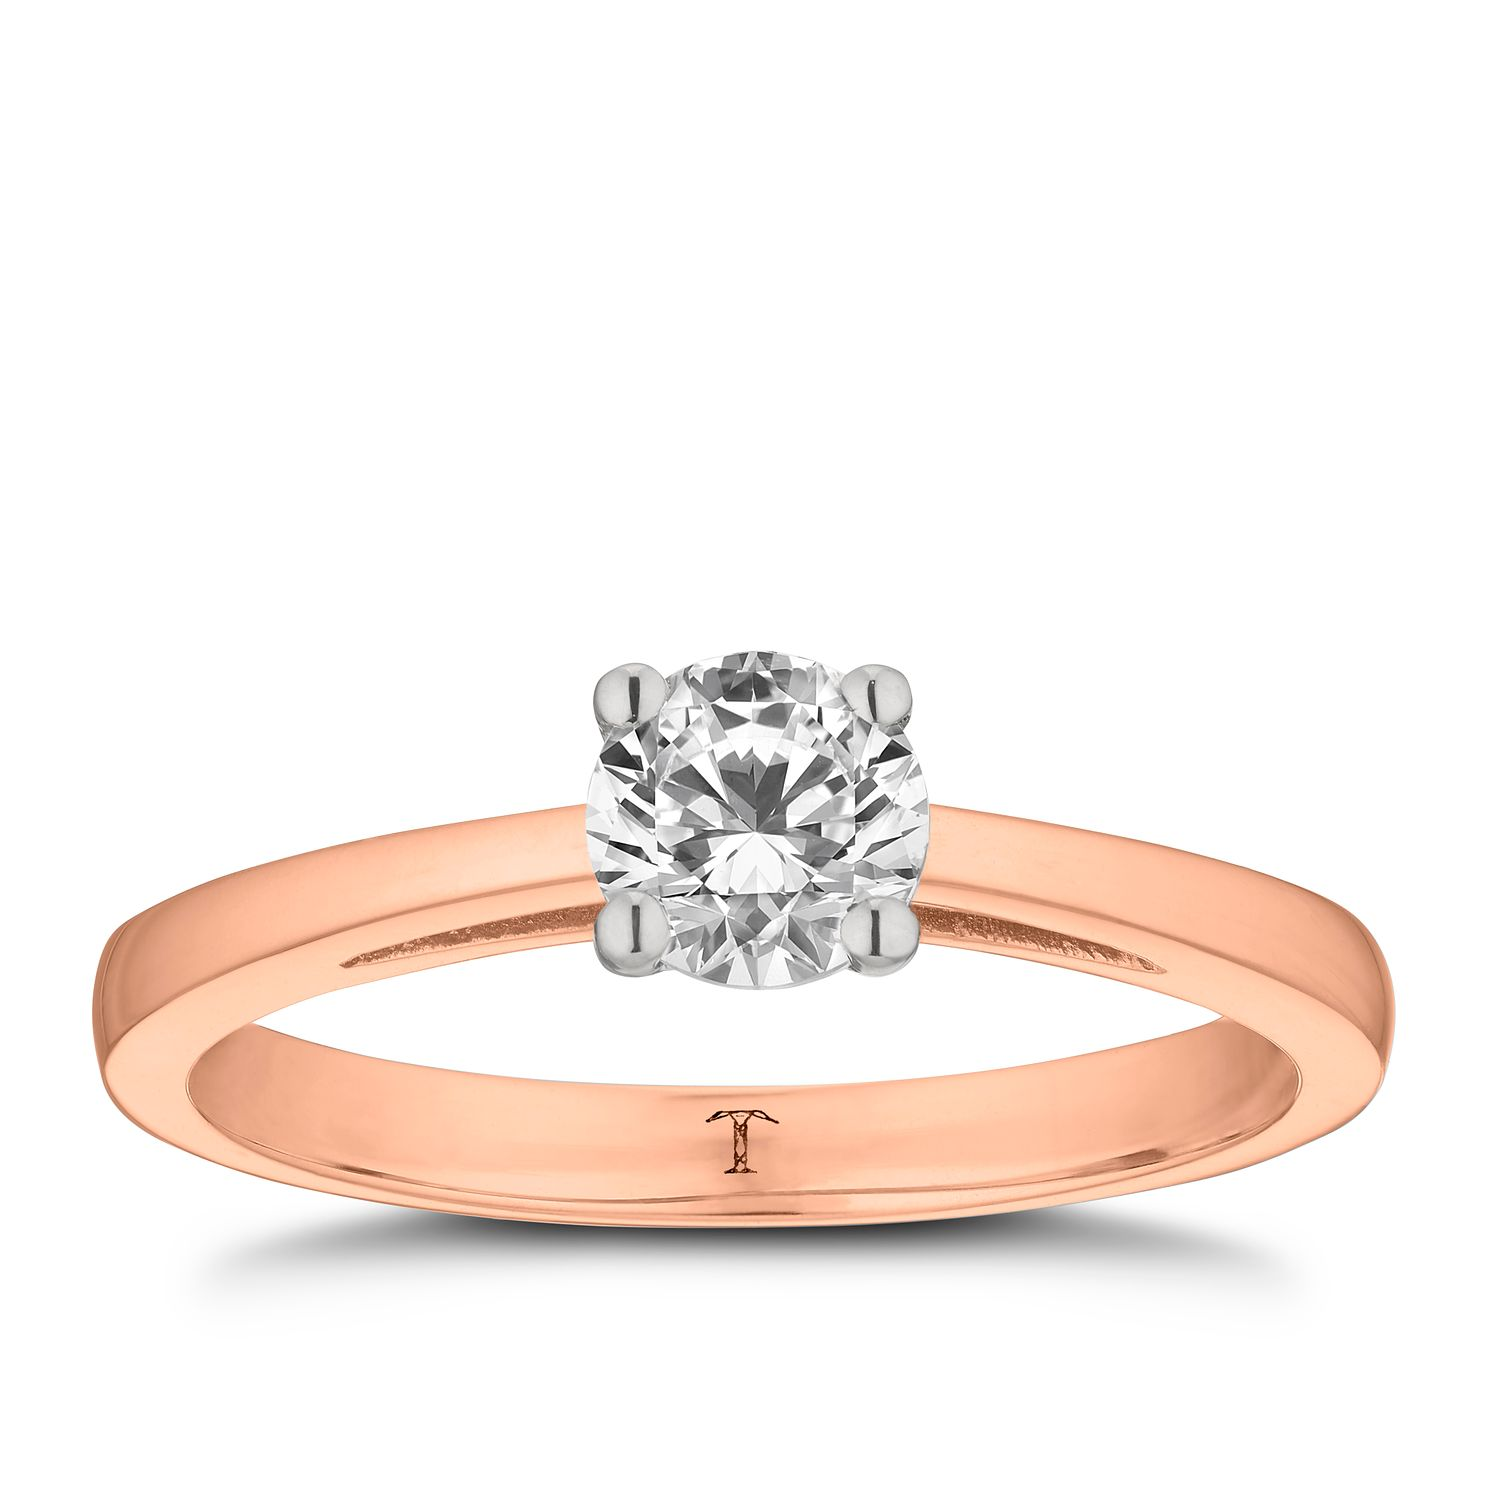 Tolkowsky 18ct Rose Gold 1/2ct Hi-S12 Diamond Ring - Product number 3982947